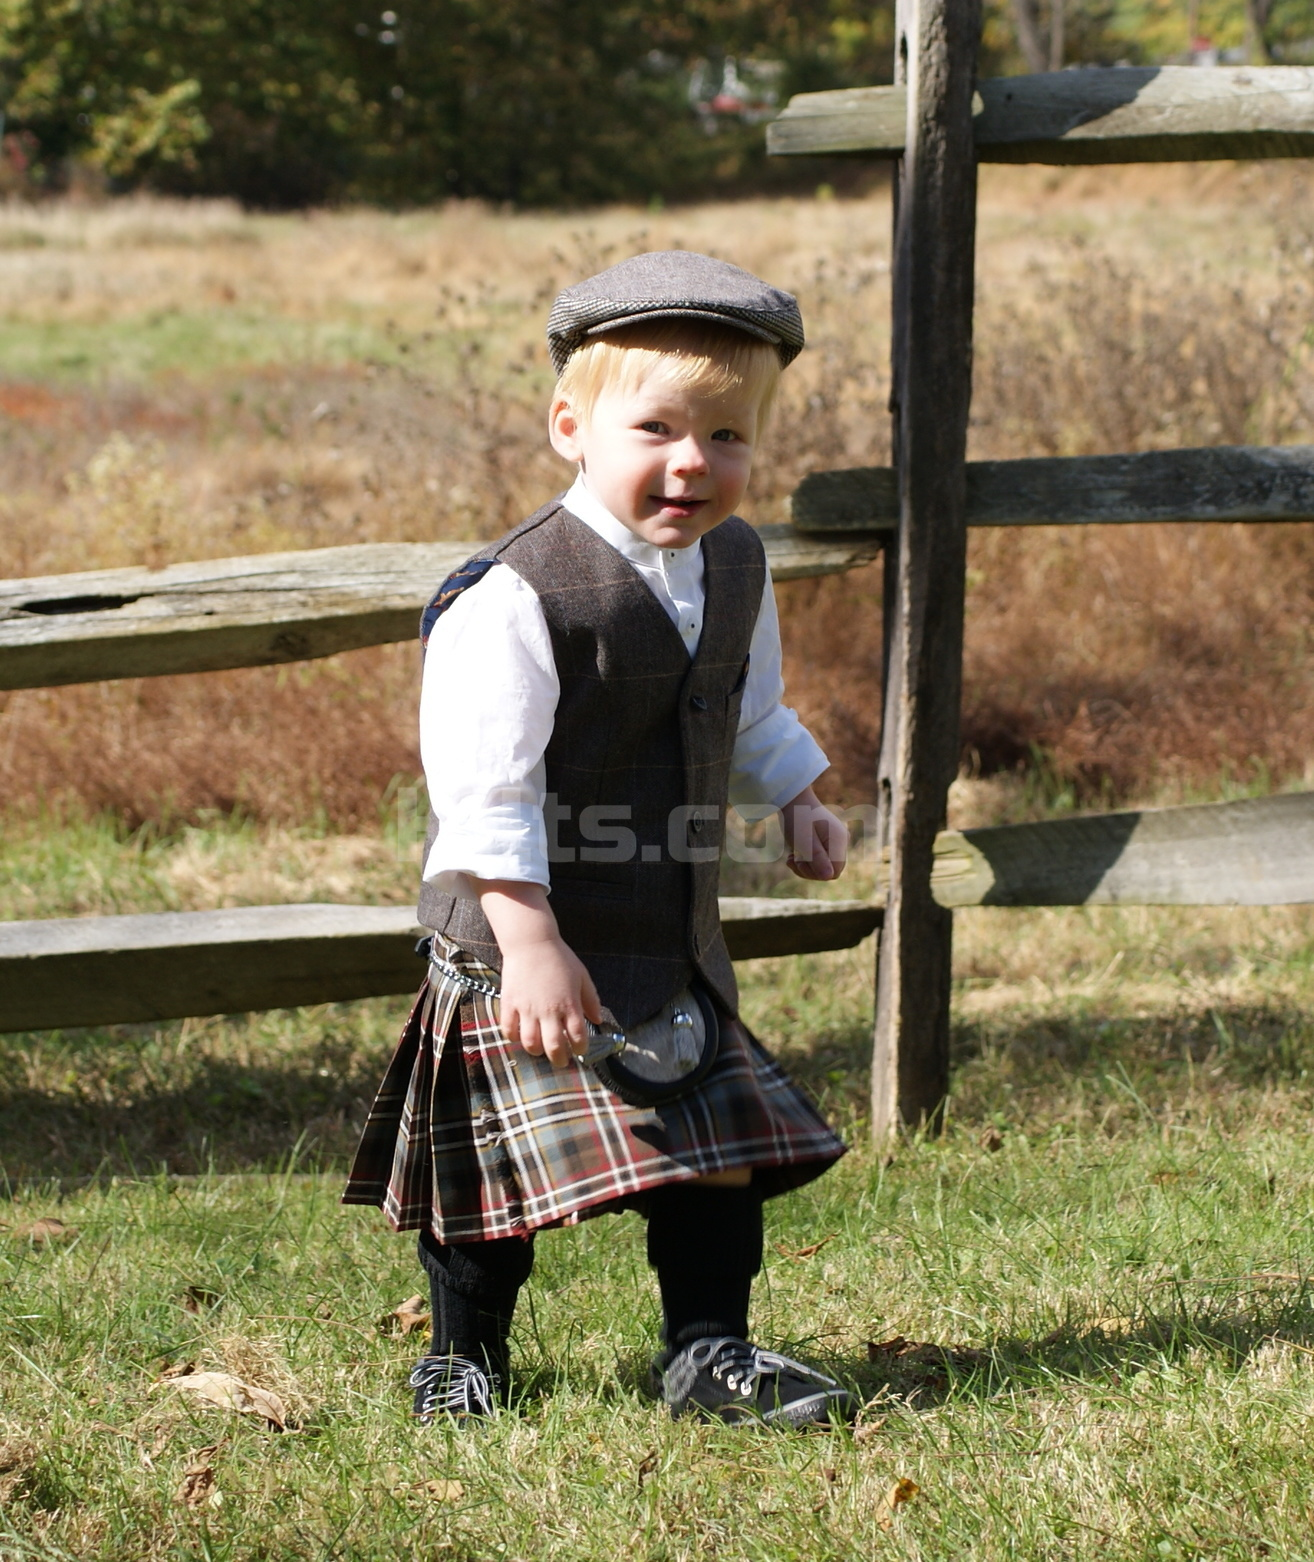 Have a look at our Kids Kilt. Our Children's Kilt is perfect for the wee Highlander!